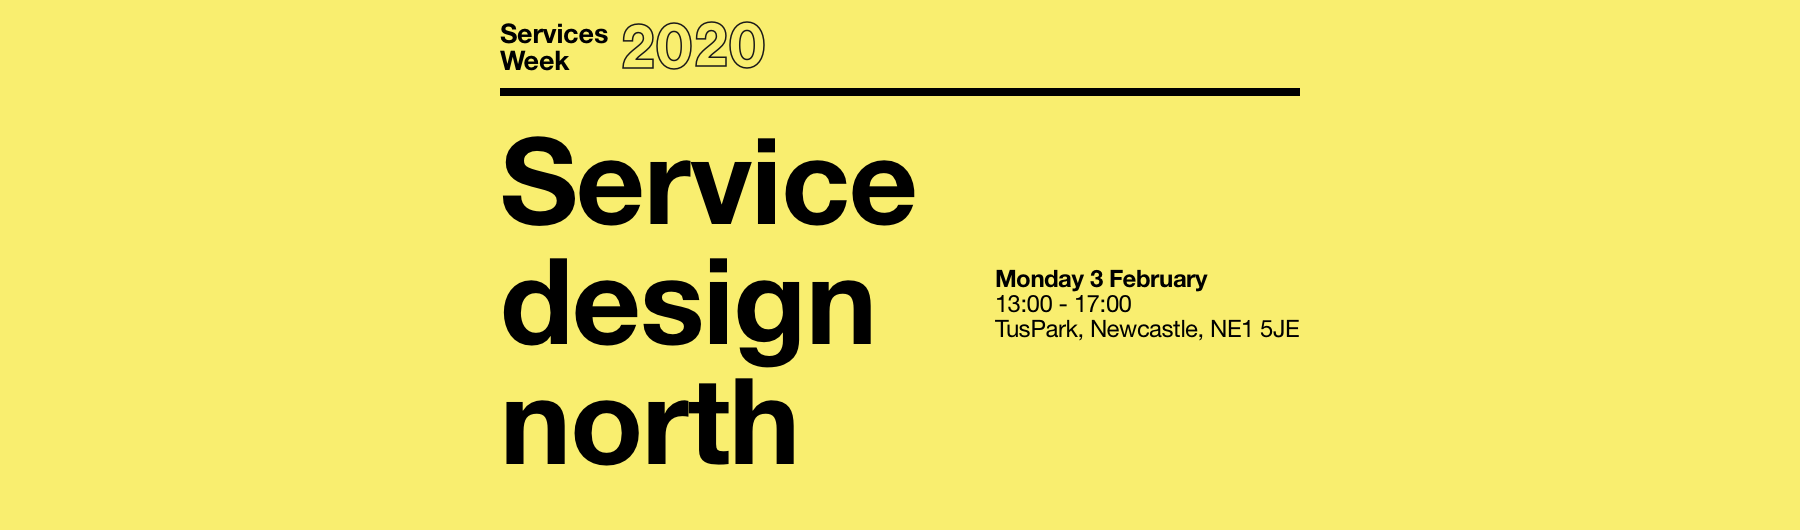 Services Week 2020. Service design north. Monday 3 February 13:00–17:00, TusPark, Newcastle, NE1 5JE